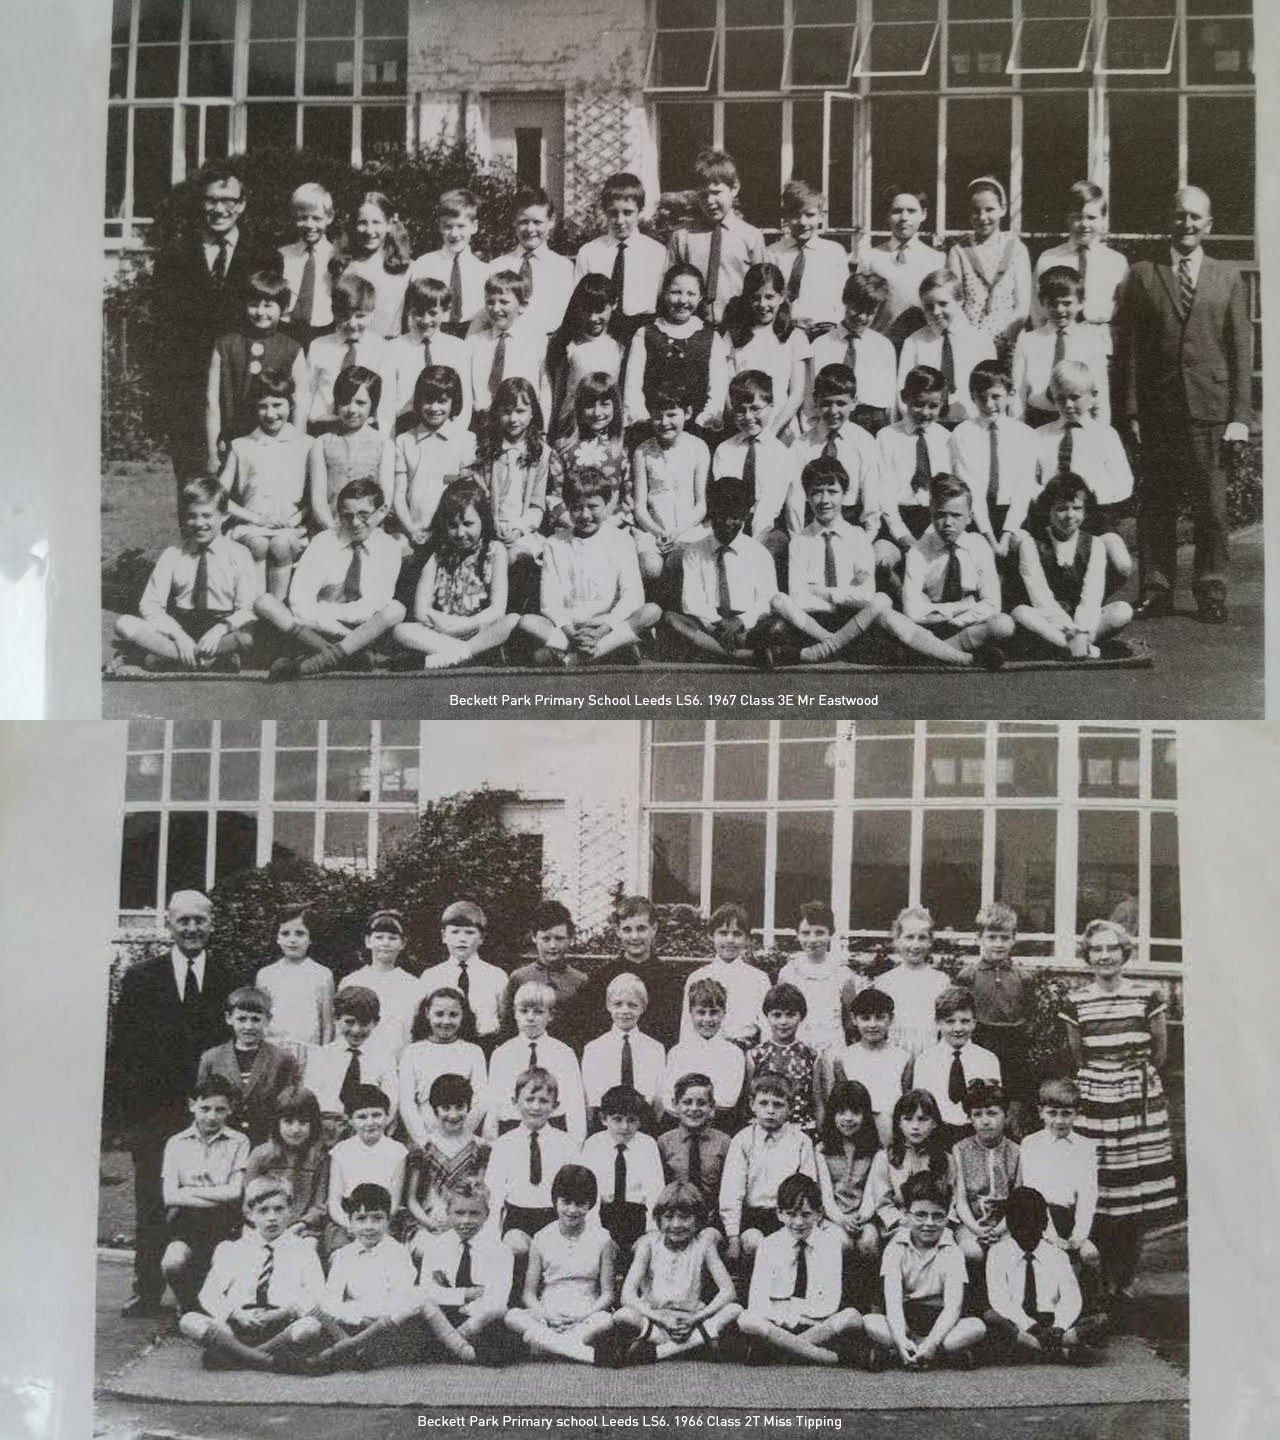 Search for your School here - My Old School Photo